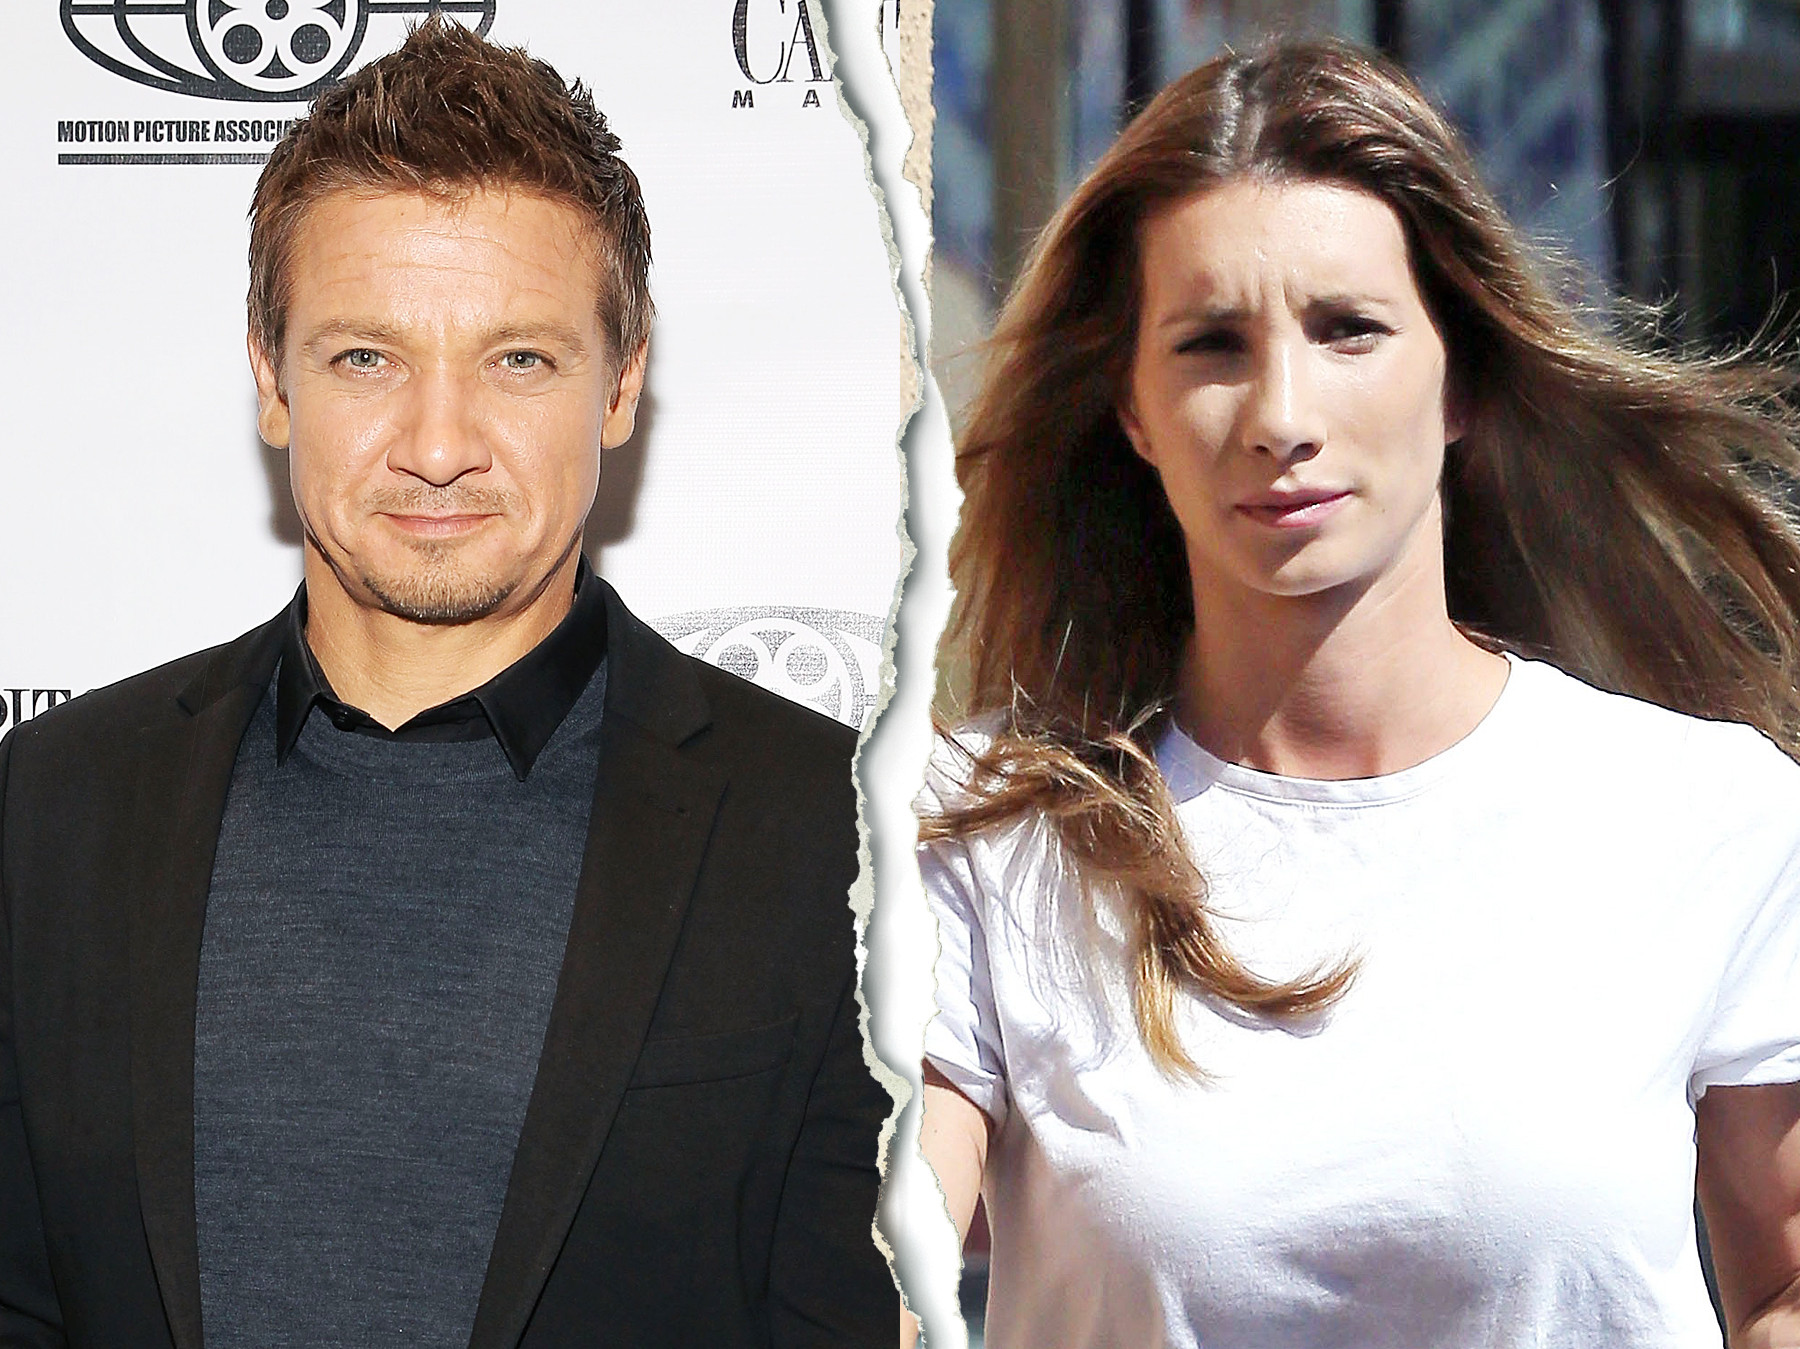 ?Avengers?star?Jeremy Renner?accused by ex-wife of threatening to kill her.?